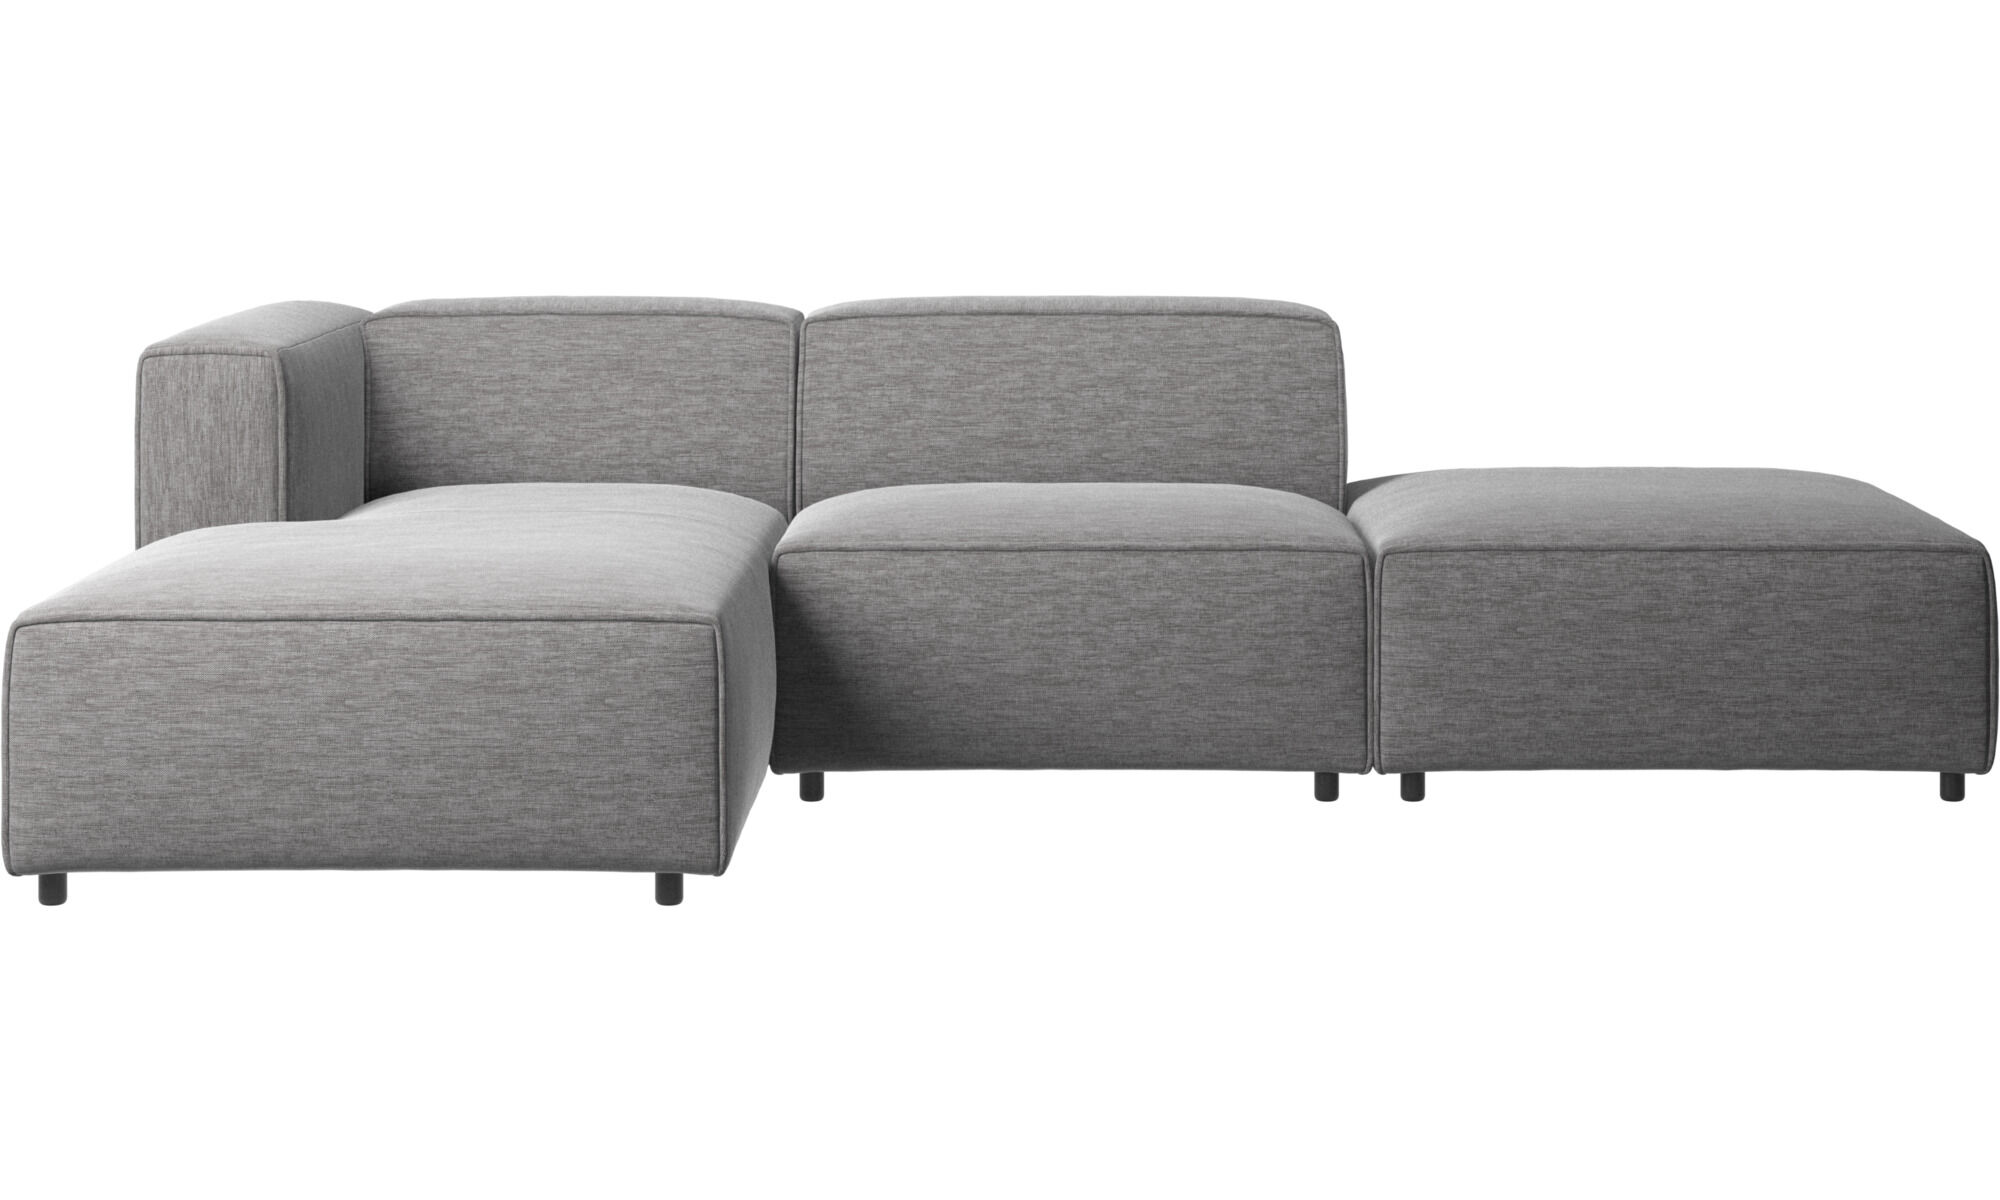 chaise lounge sofas carmo sofa with lounging and resting unit gray fabric